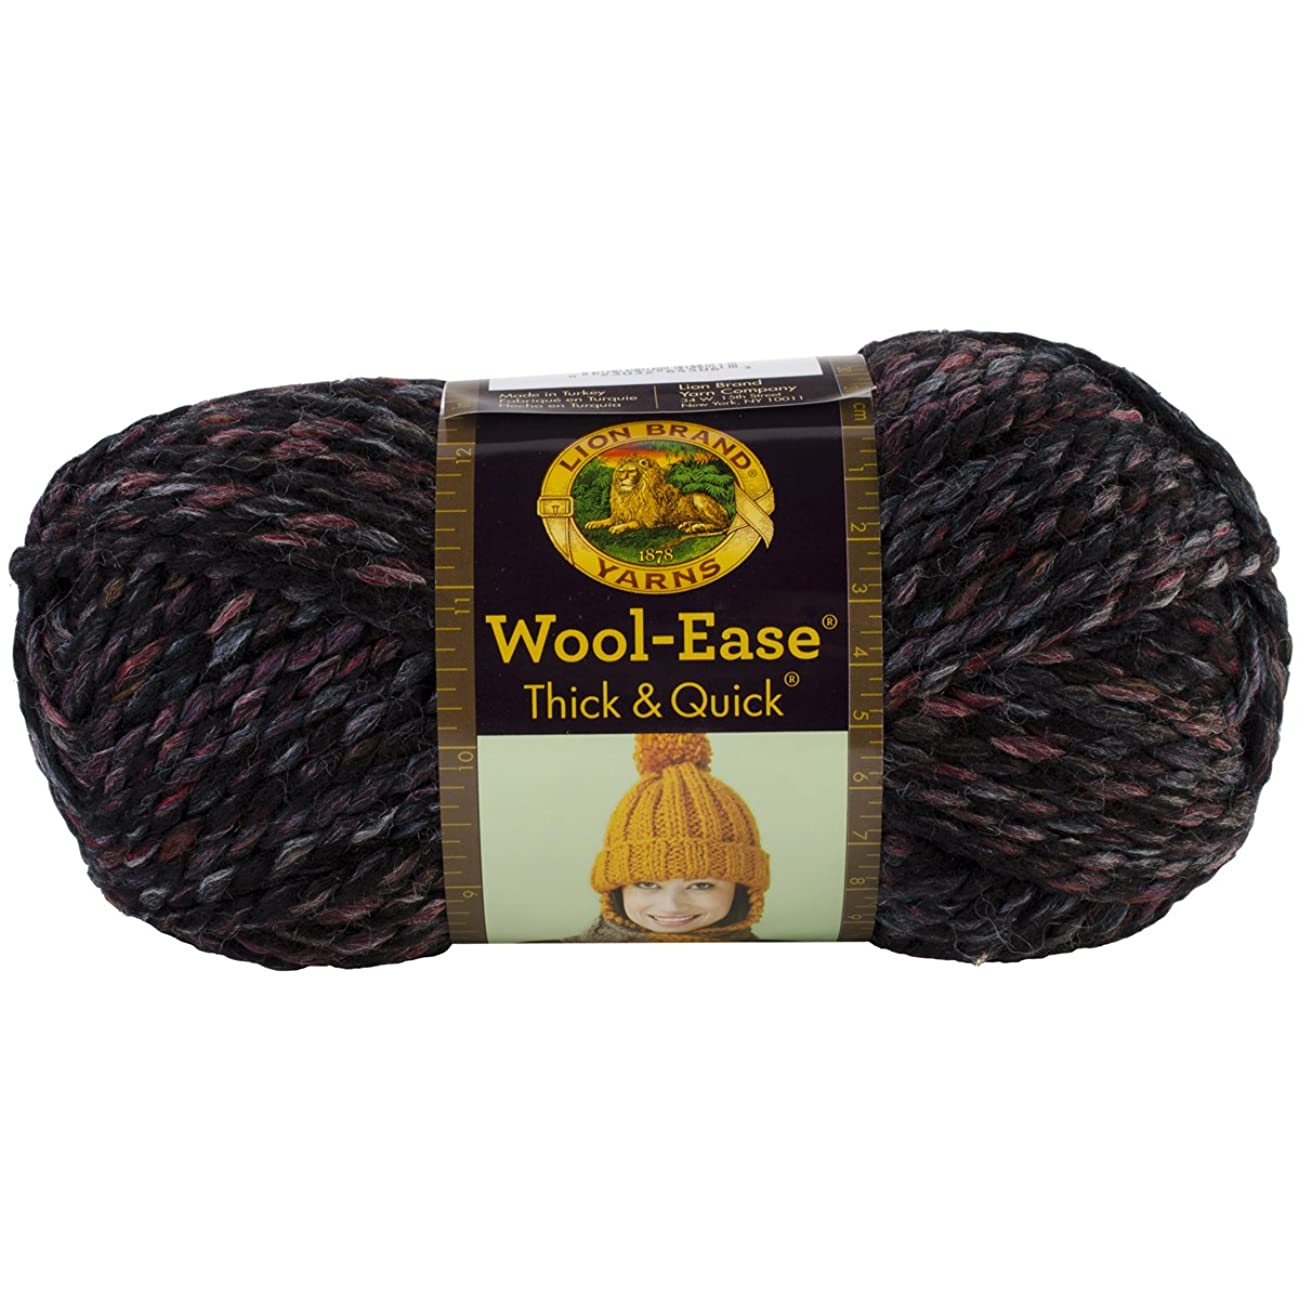 Lion Brand Yarn 640-506 Wool-Ease Thick and Quick Yarn, Blackstone